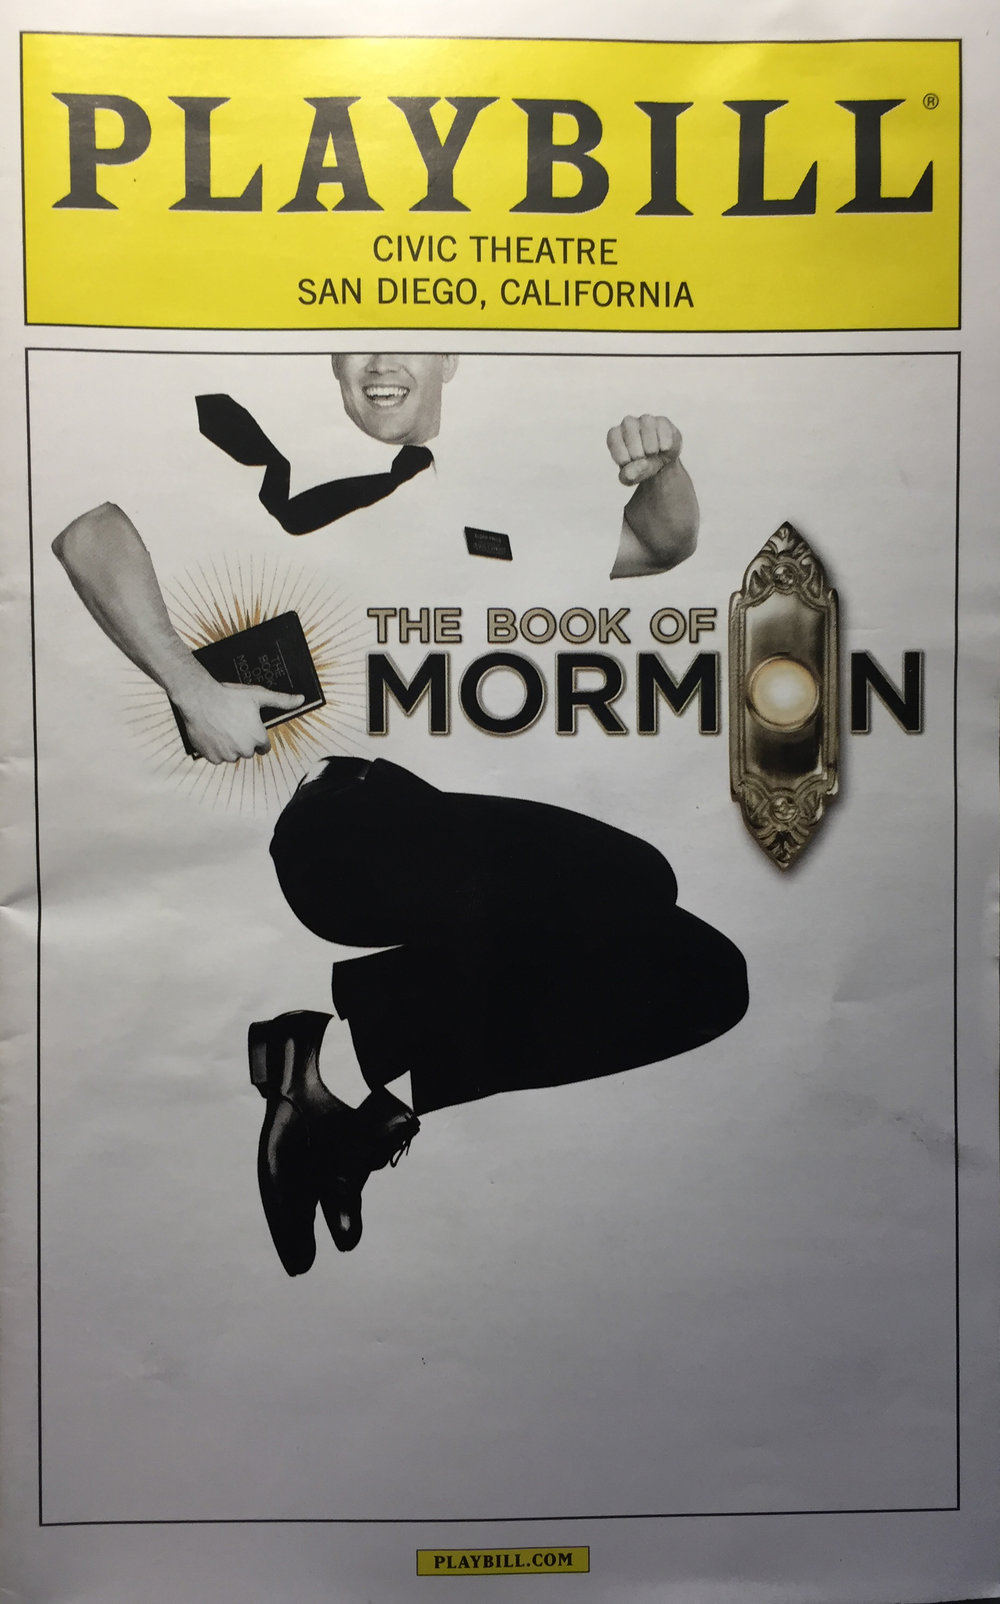 2014-05-30-BOOKOFMORMON-PROGRAMCOVER.jpg